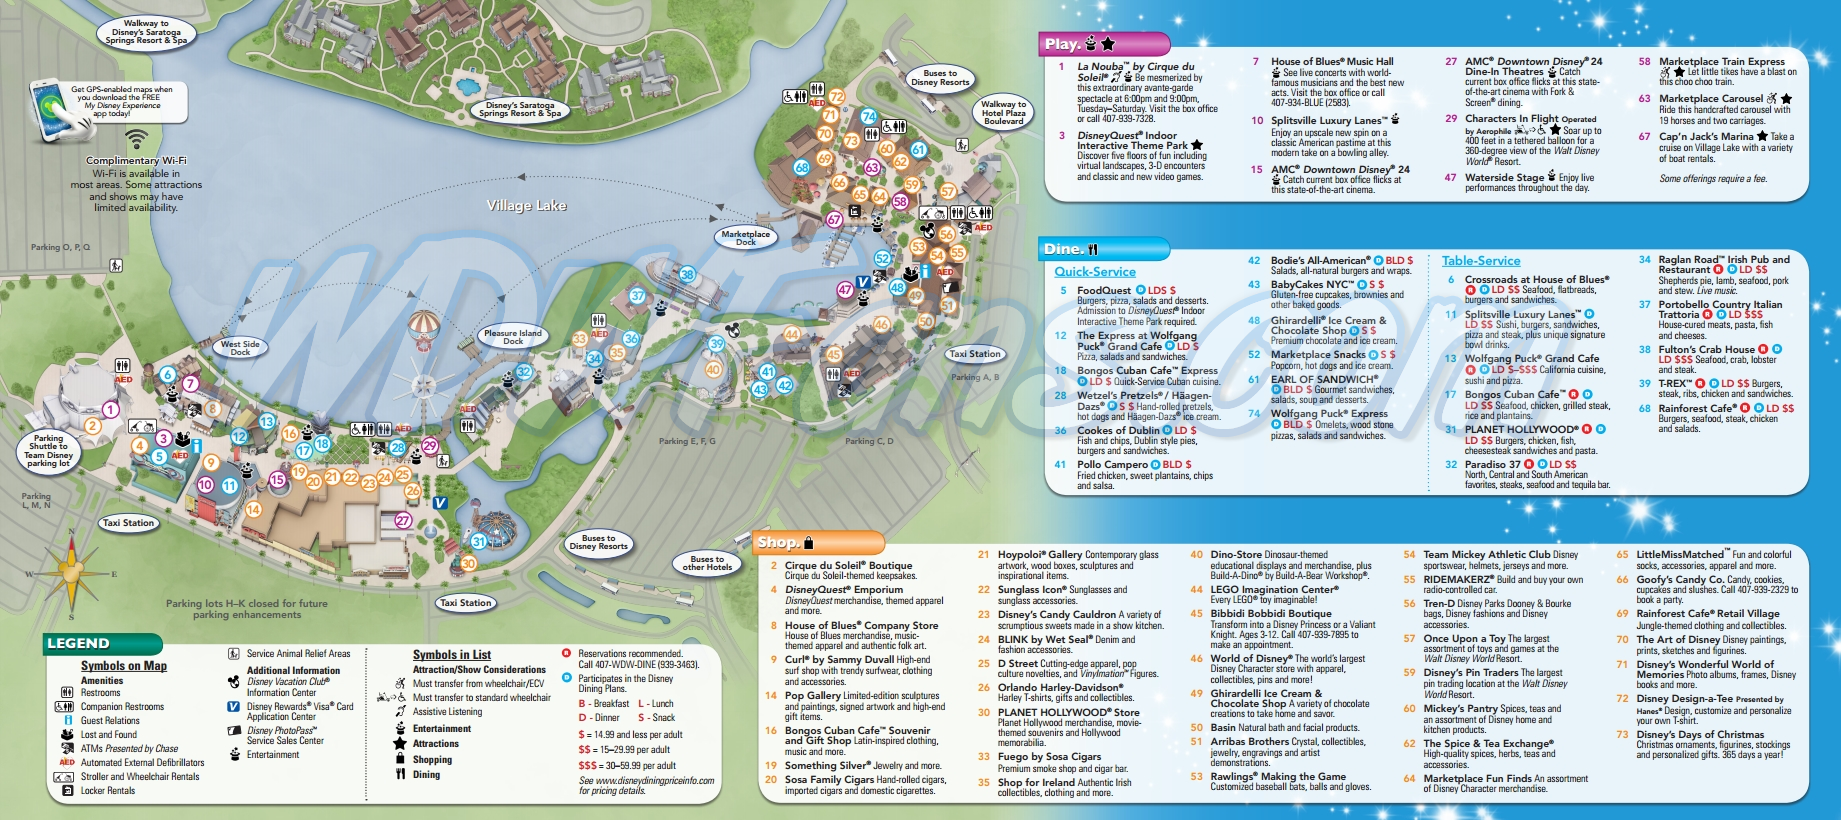 map of downtown disney orlando fl 2013 Downtown Disney Map Walt Disney World Resort Maps Wdwfans map of downtown disney orlando fl